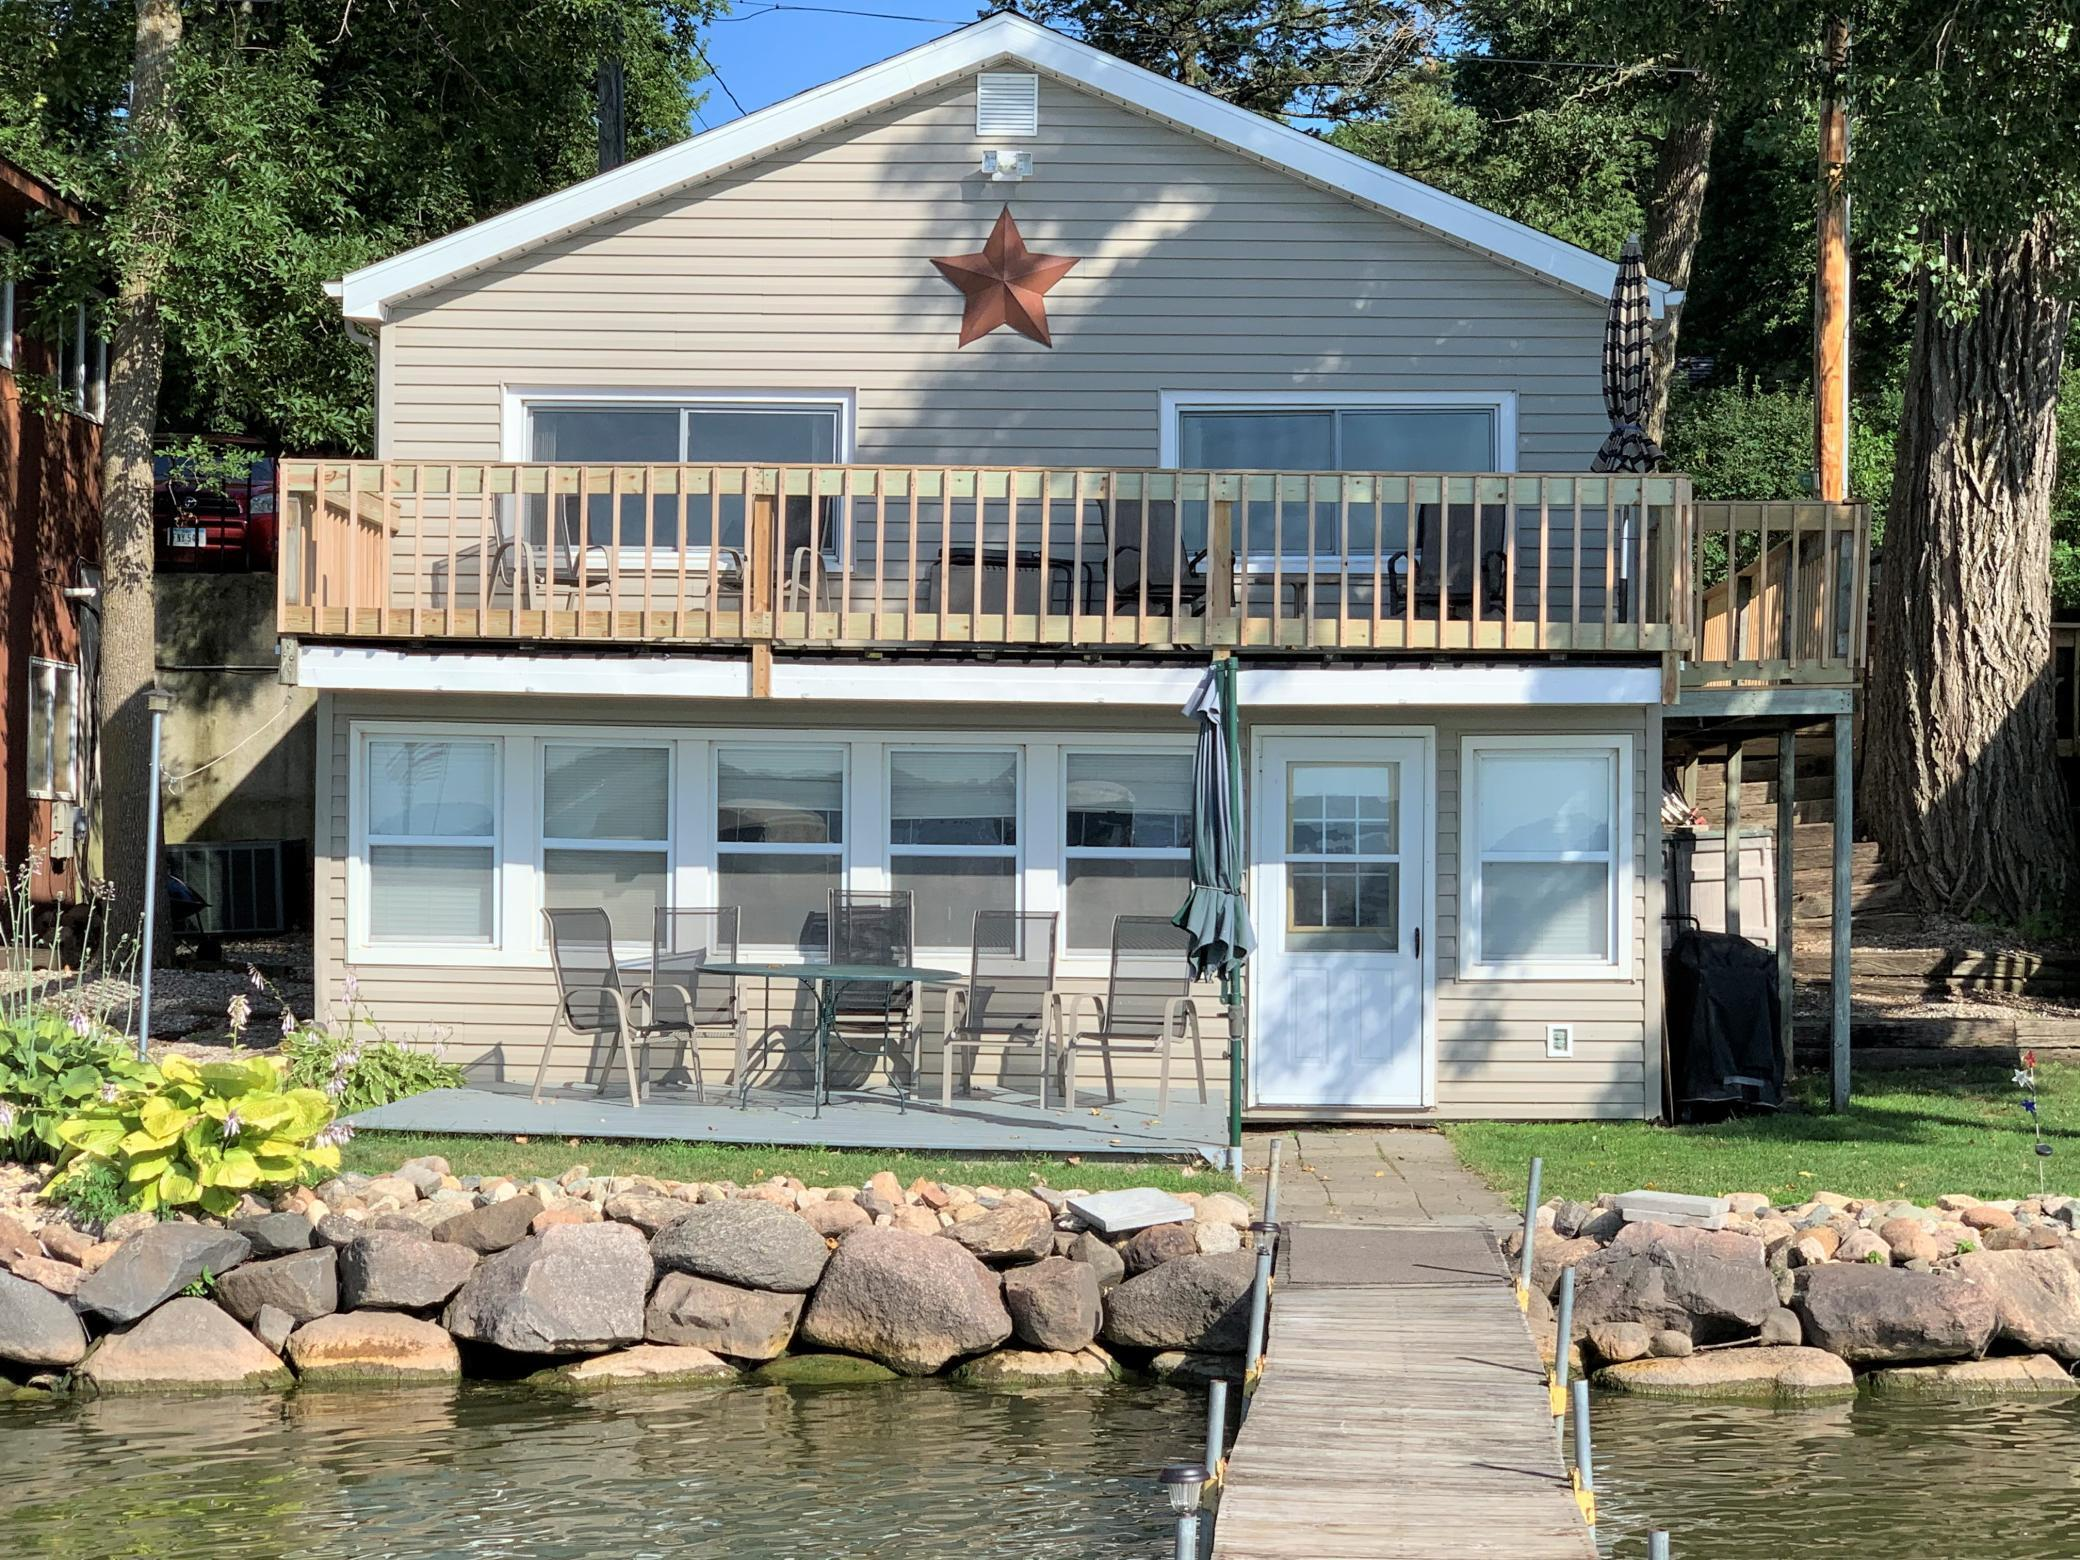 Lakefront year around furnished cabin with vinyl siding includes dock and materials. 40 feet of lake frontage. Close to State Park beach. Updated deck railings. Most windows have been updated, new roof shingles in 2019. Great deck with awesome lake view. Sunsets are spectacular and great view of 4th of July fireworks from upper and lower decks. Affordable lakefront cabin! Start making those family memories today!